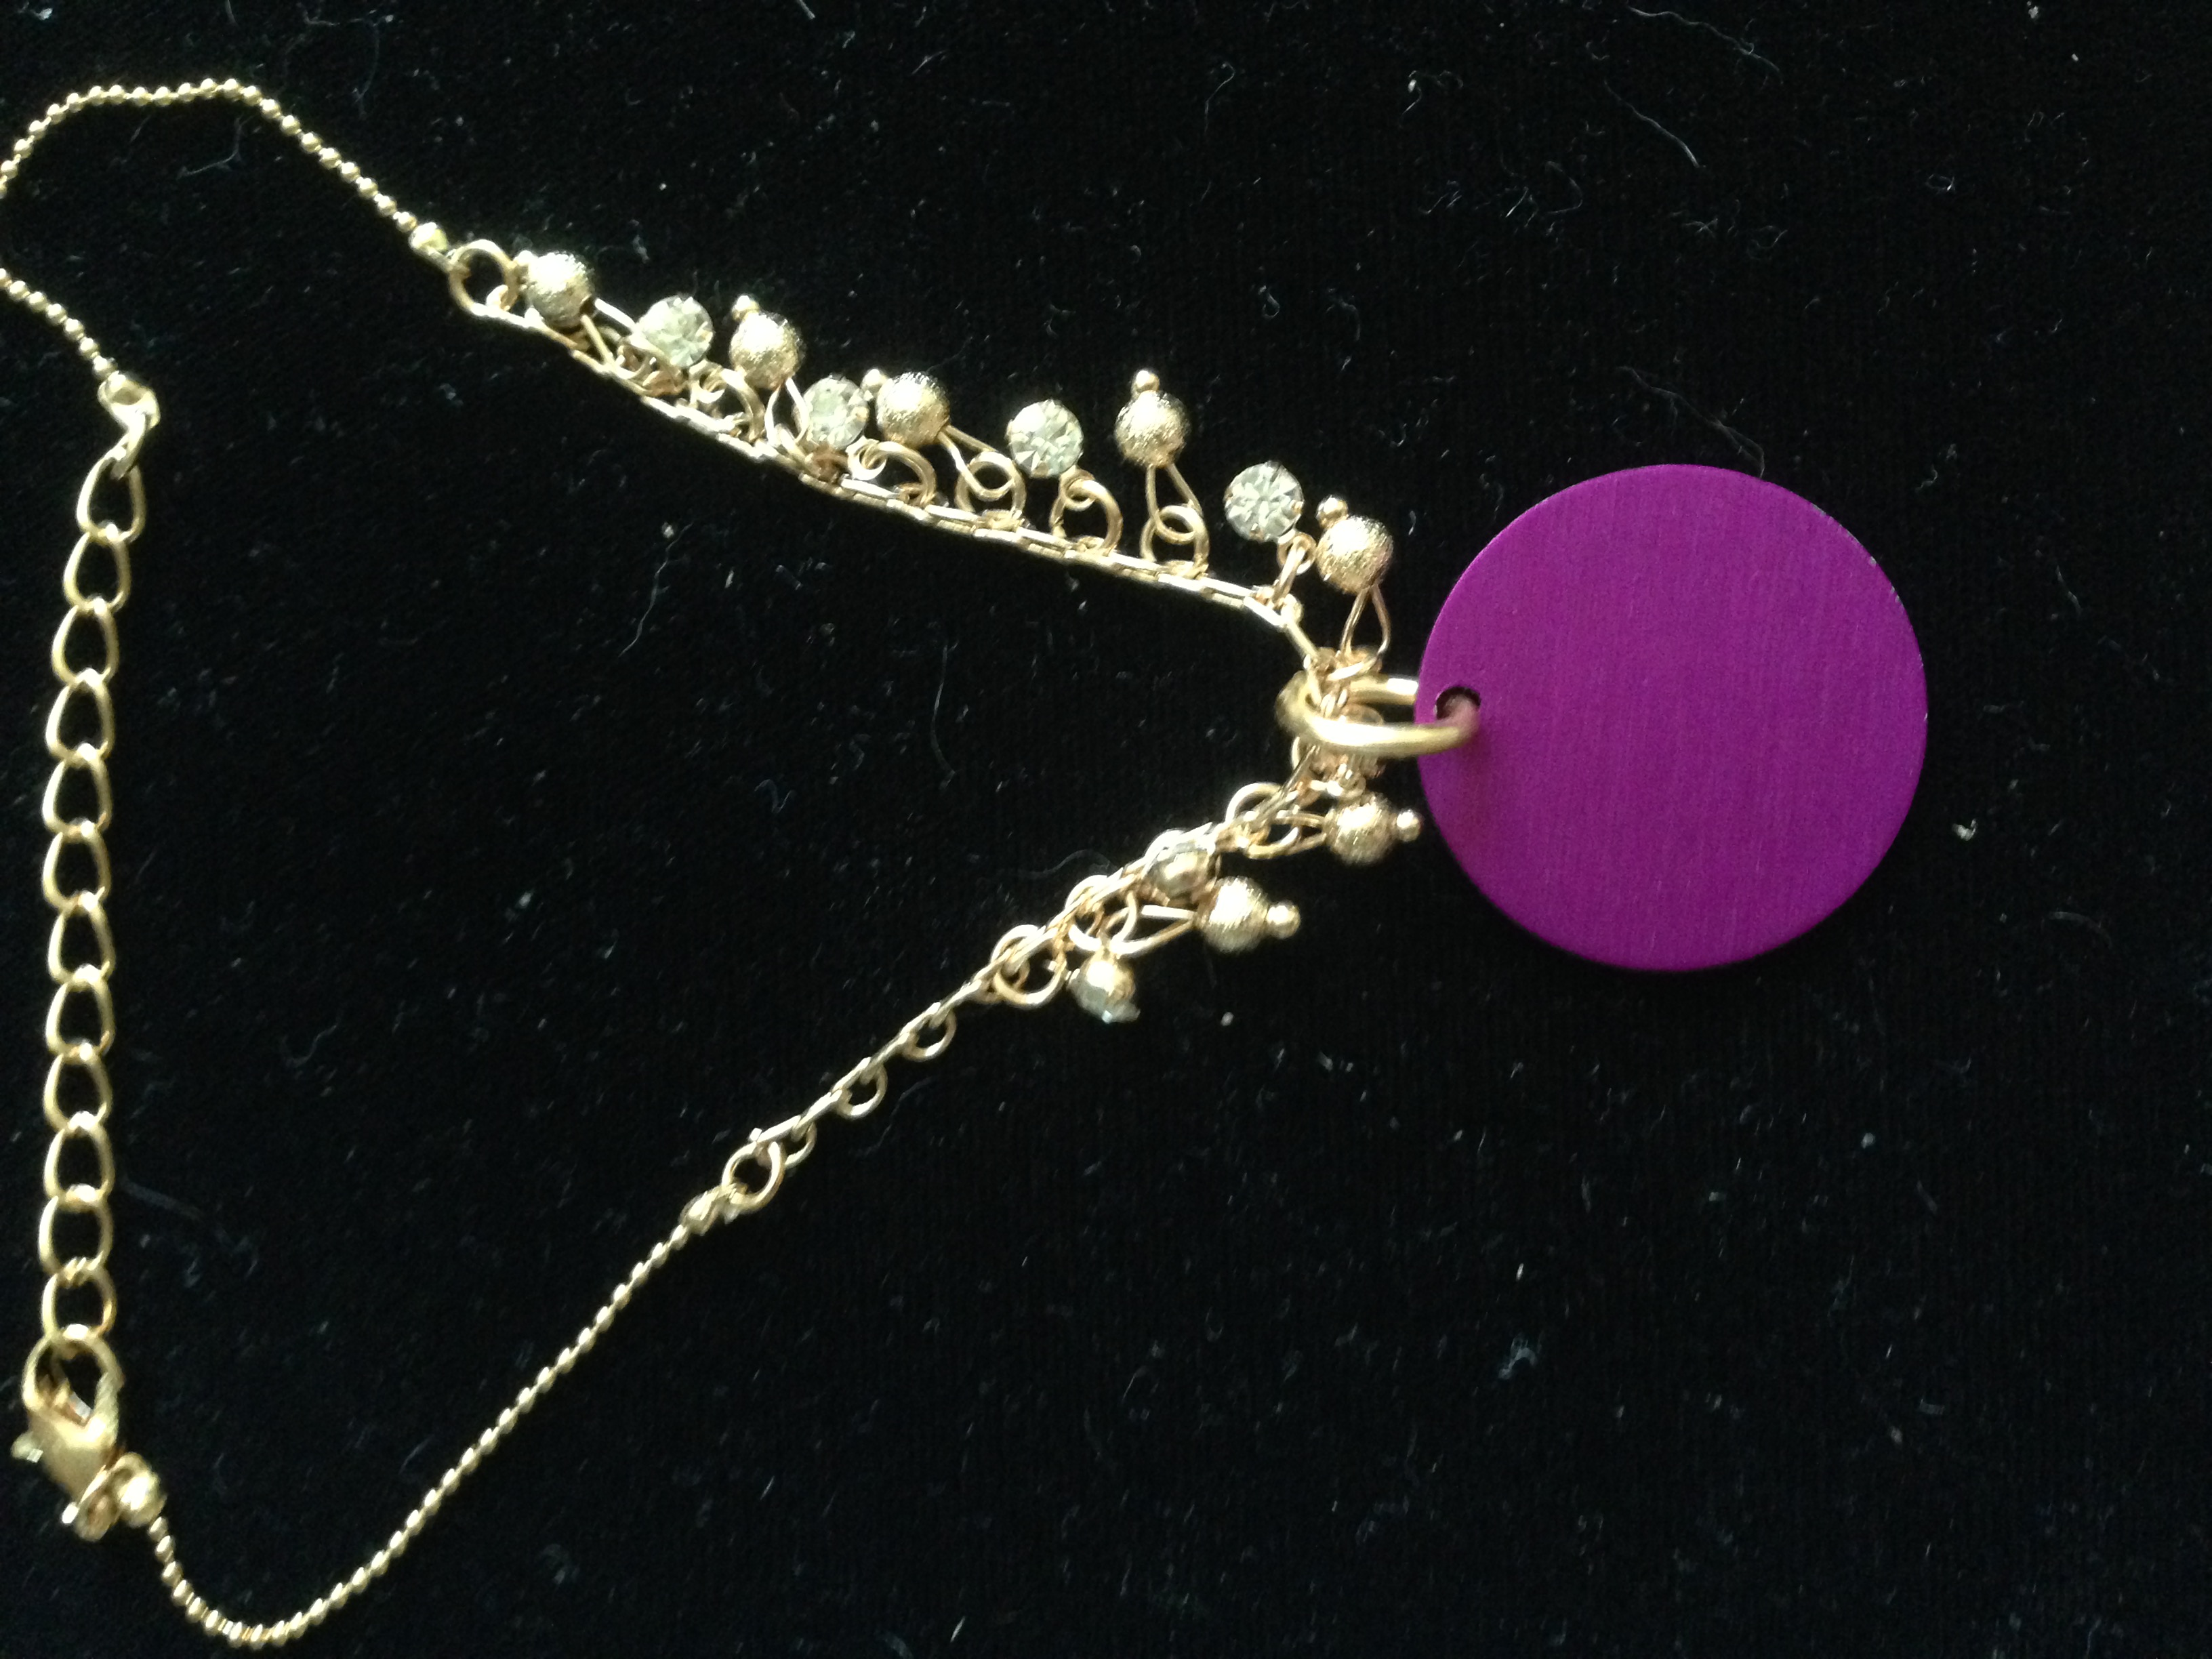 Royal Gold/Rhinestone Anklet/Bracelet w/Purple Disk